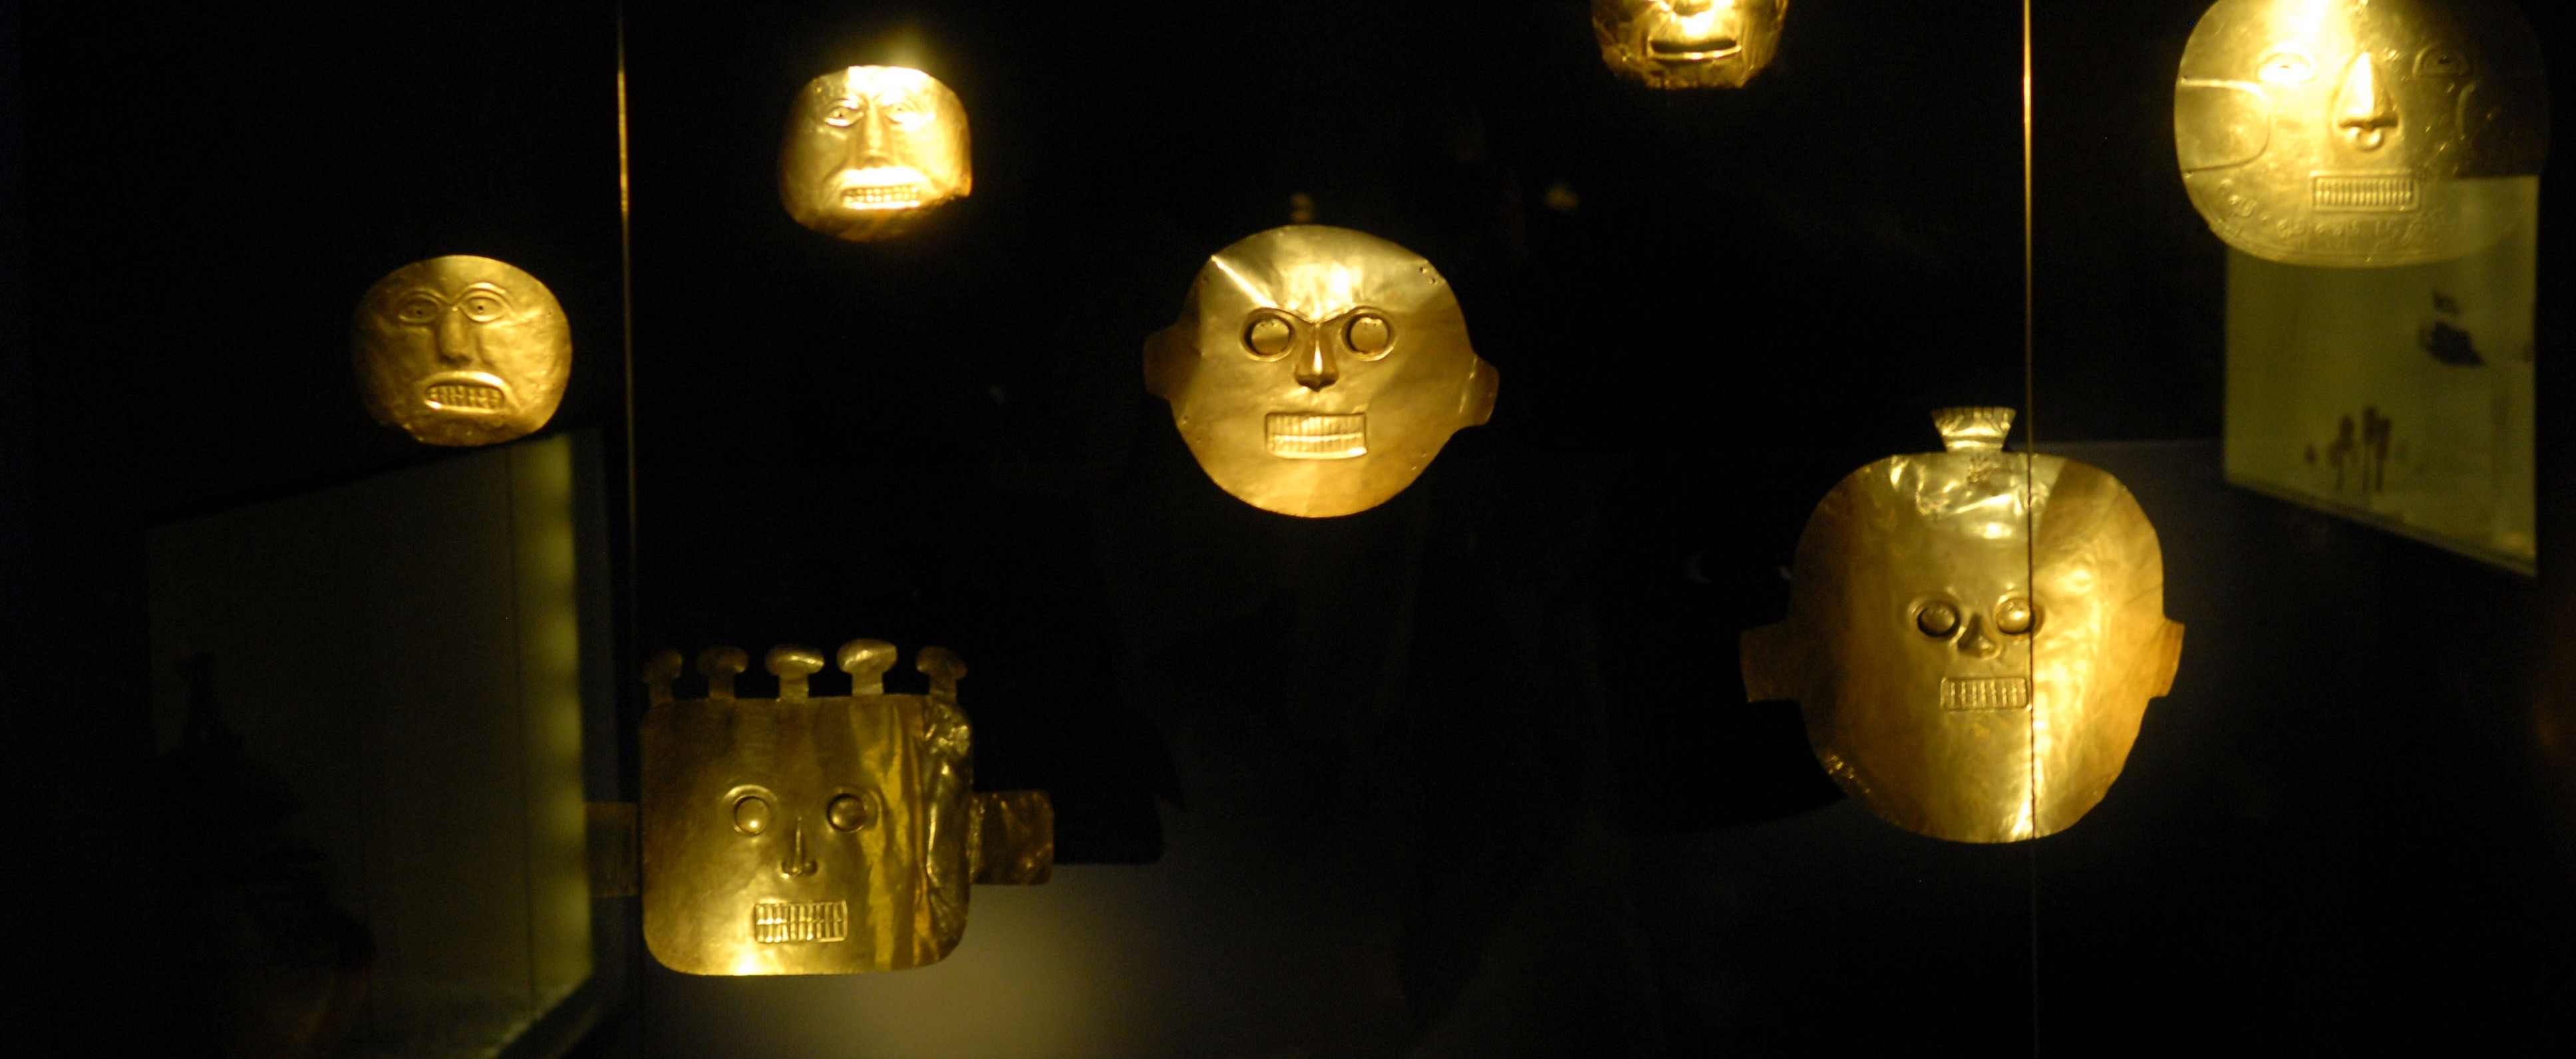 https://www.kontour-travel.com/wp-content/uploads/bogota-colombia-goldmuseum-004.jpg